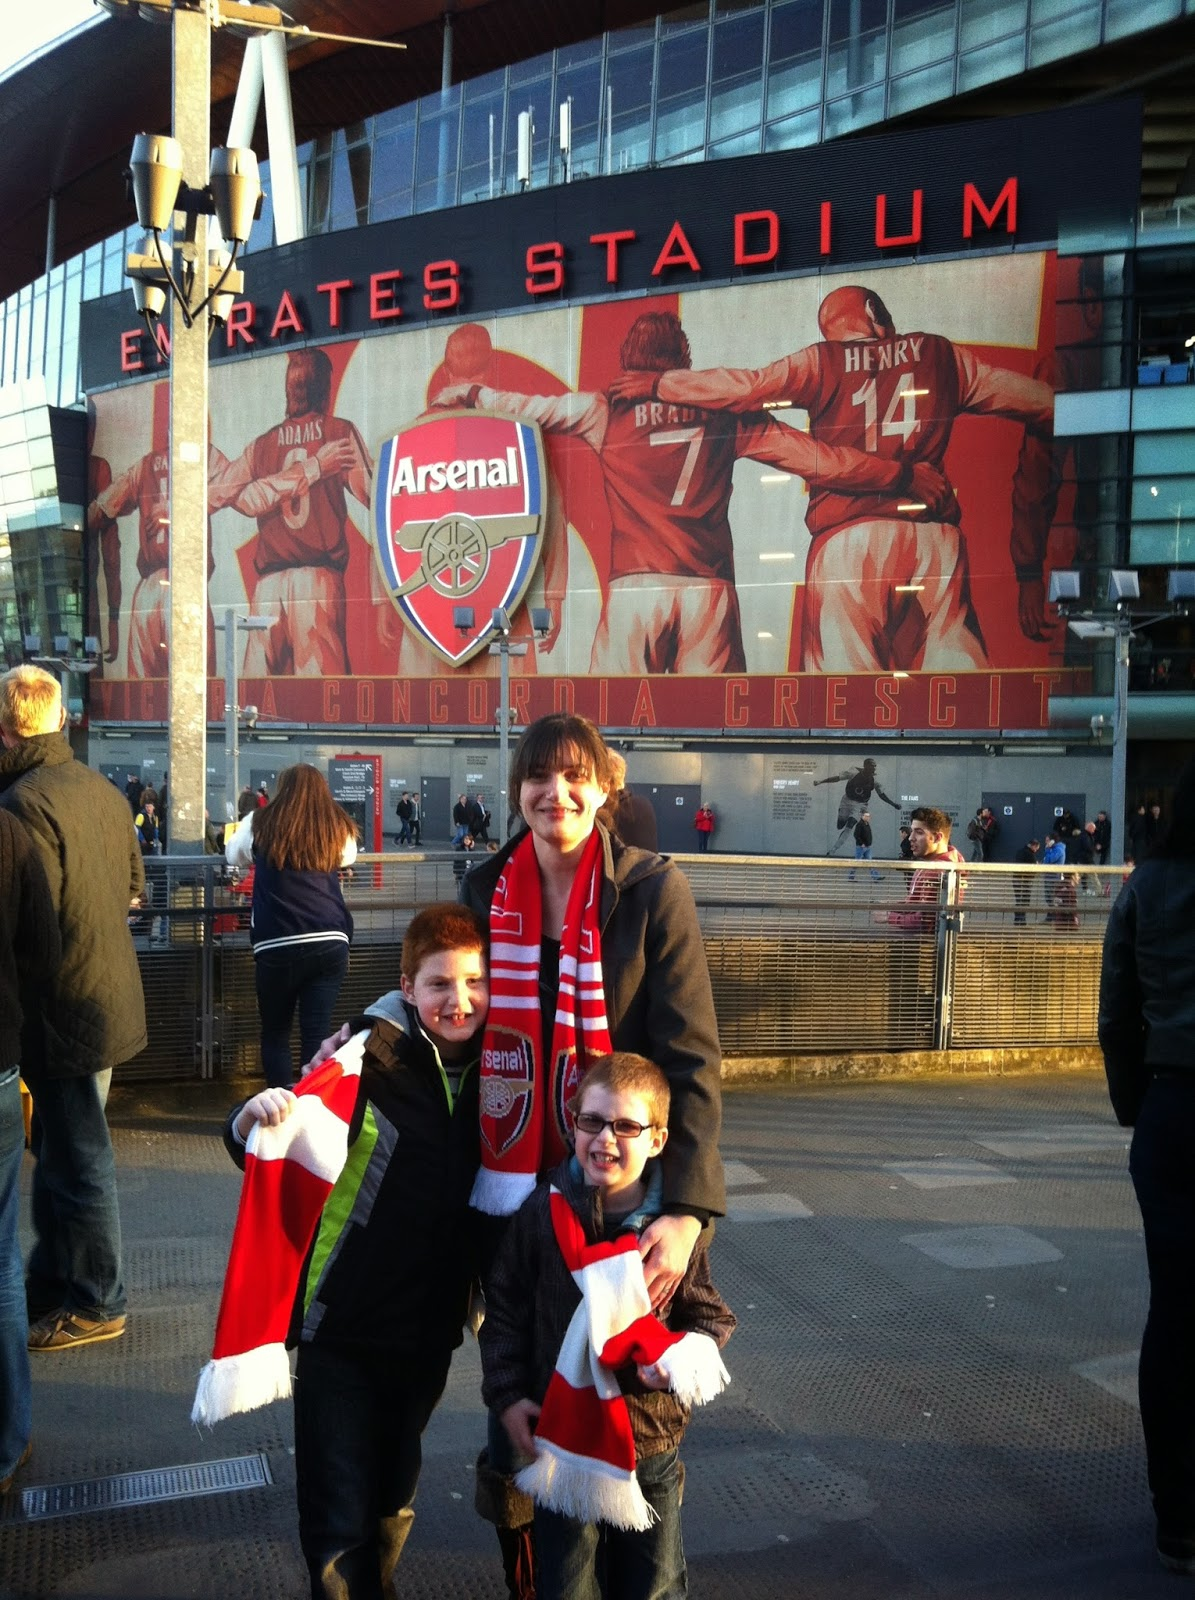 The Arsenal experience